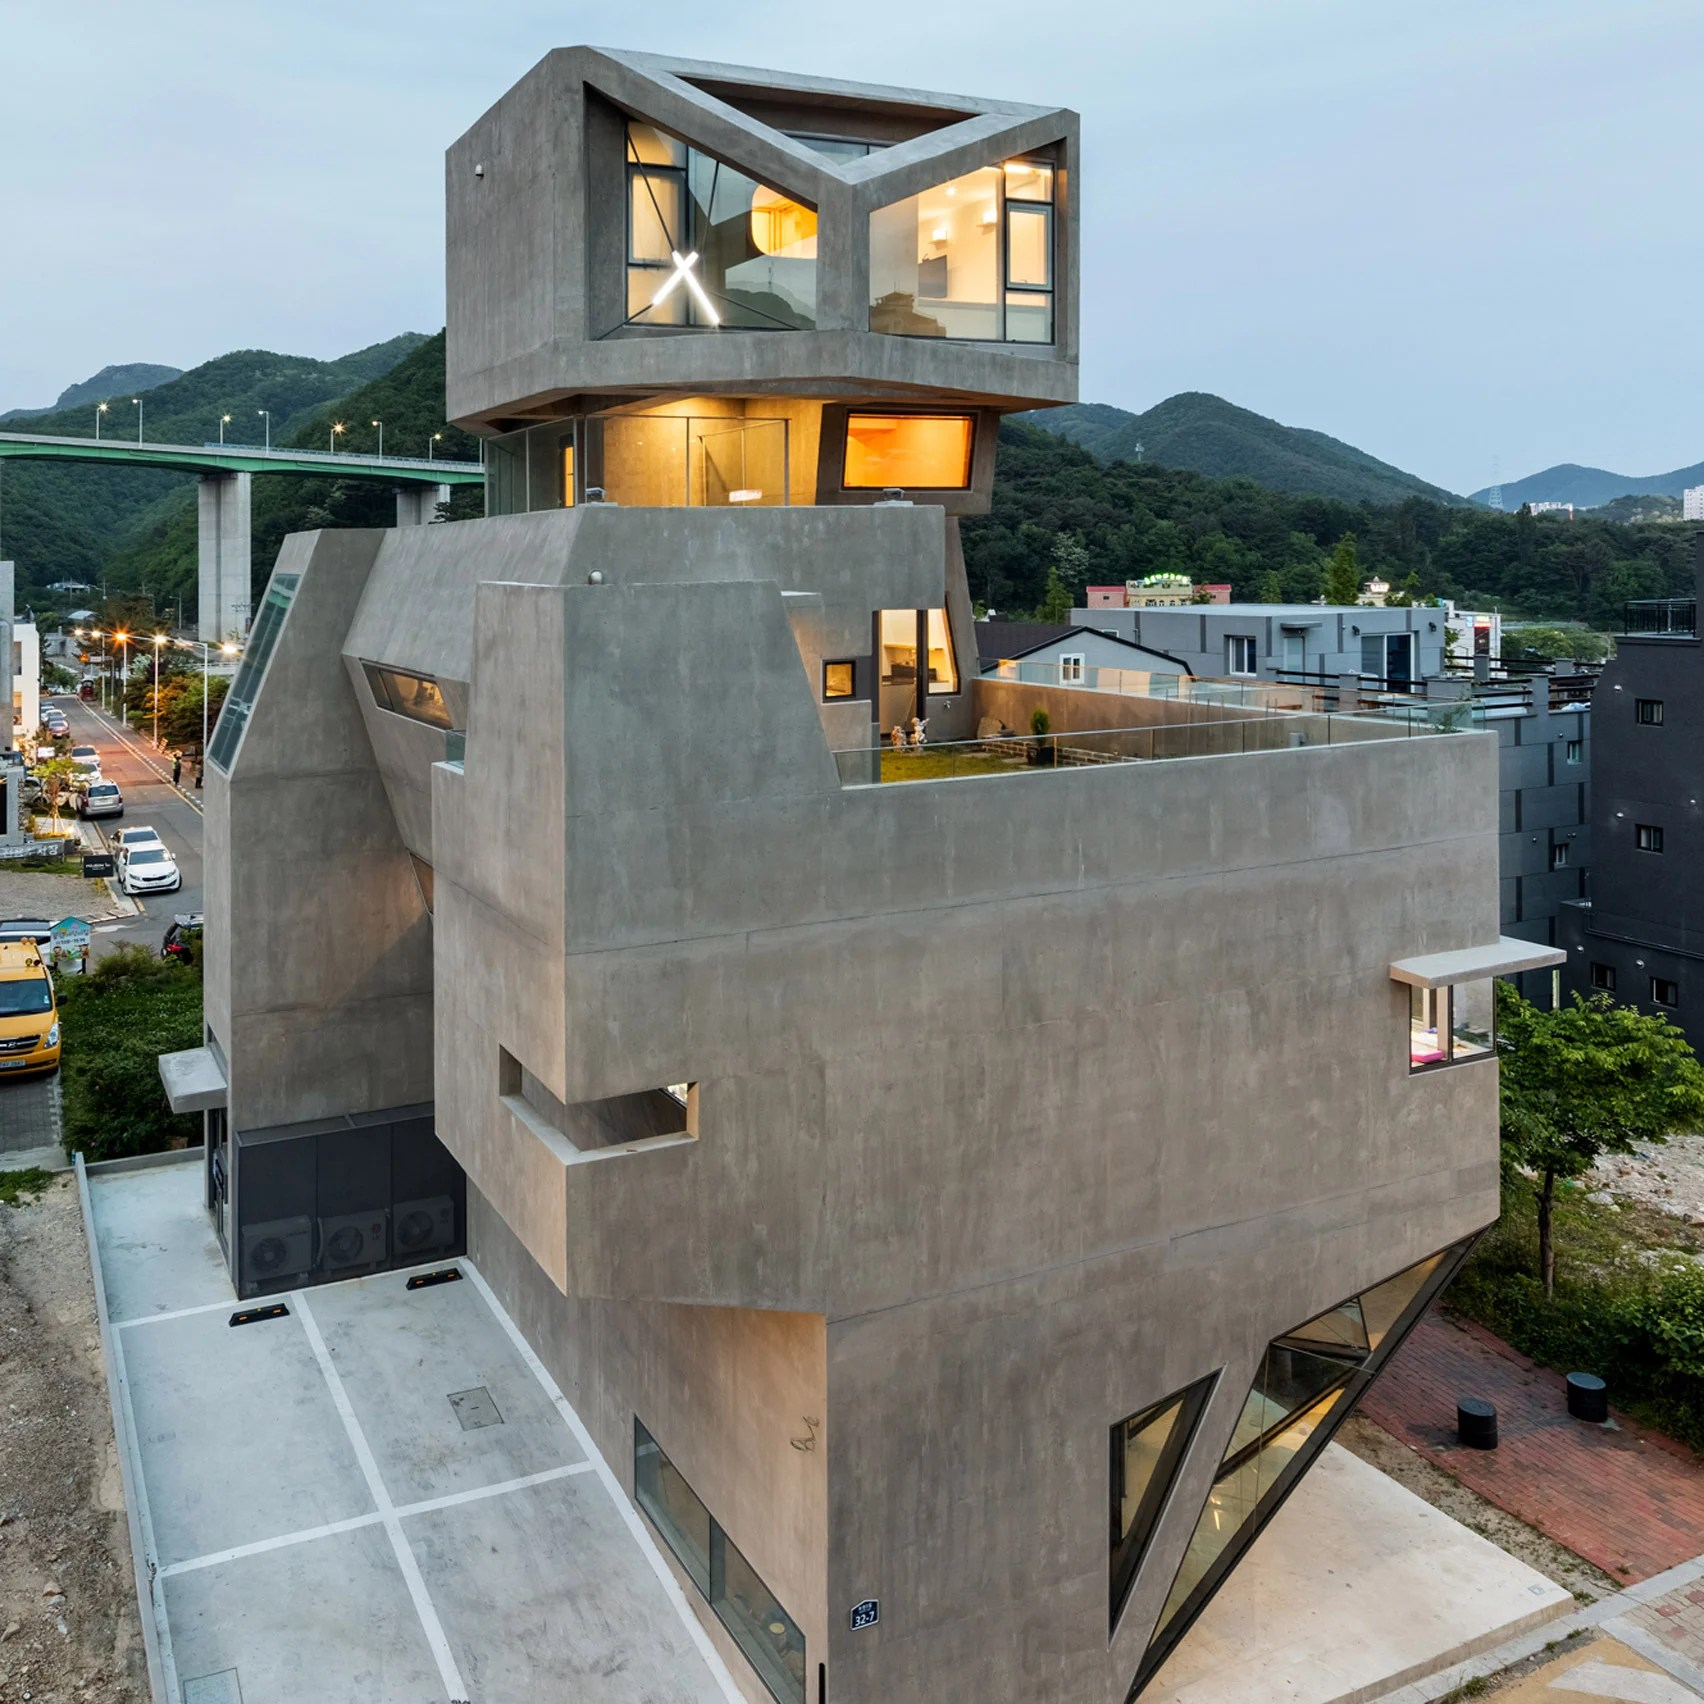 Busan Times building by Moon Hoon